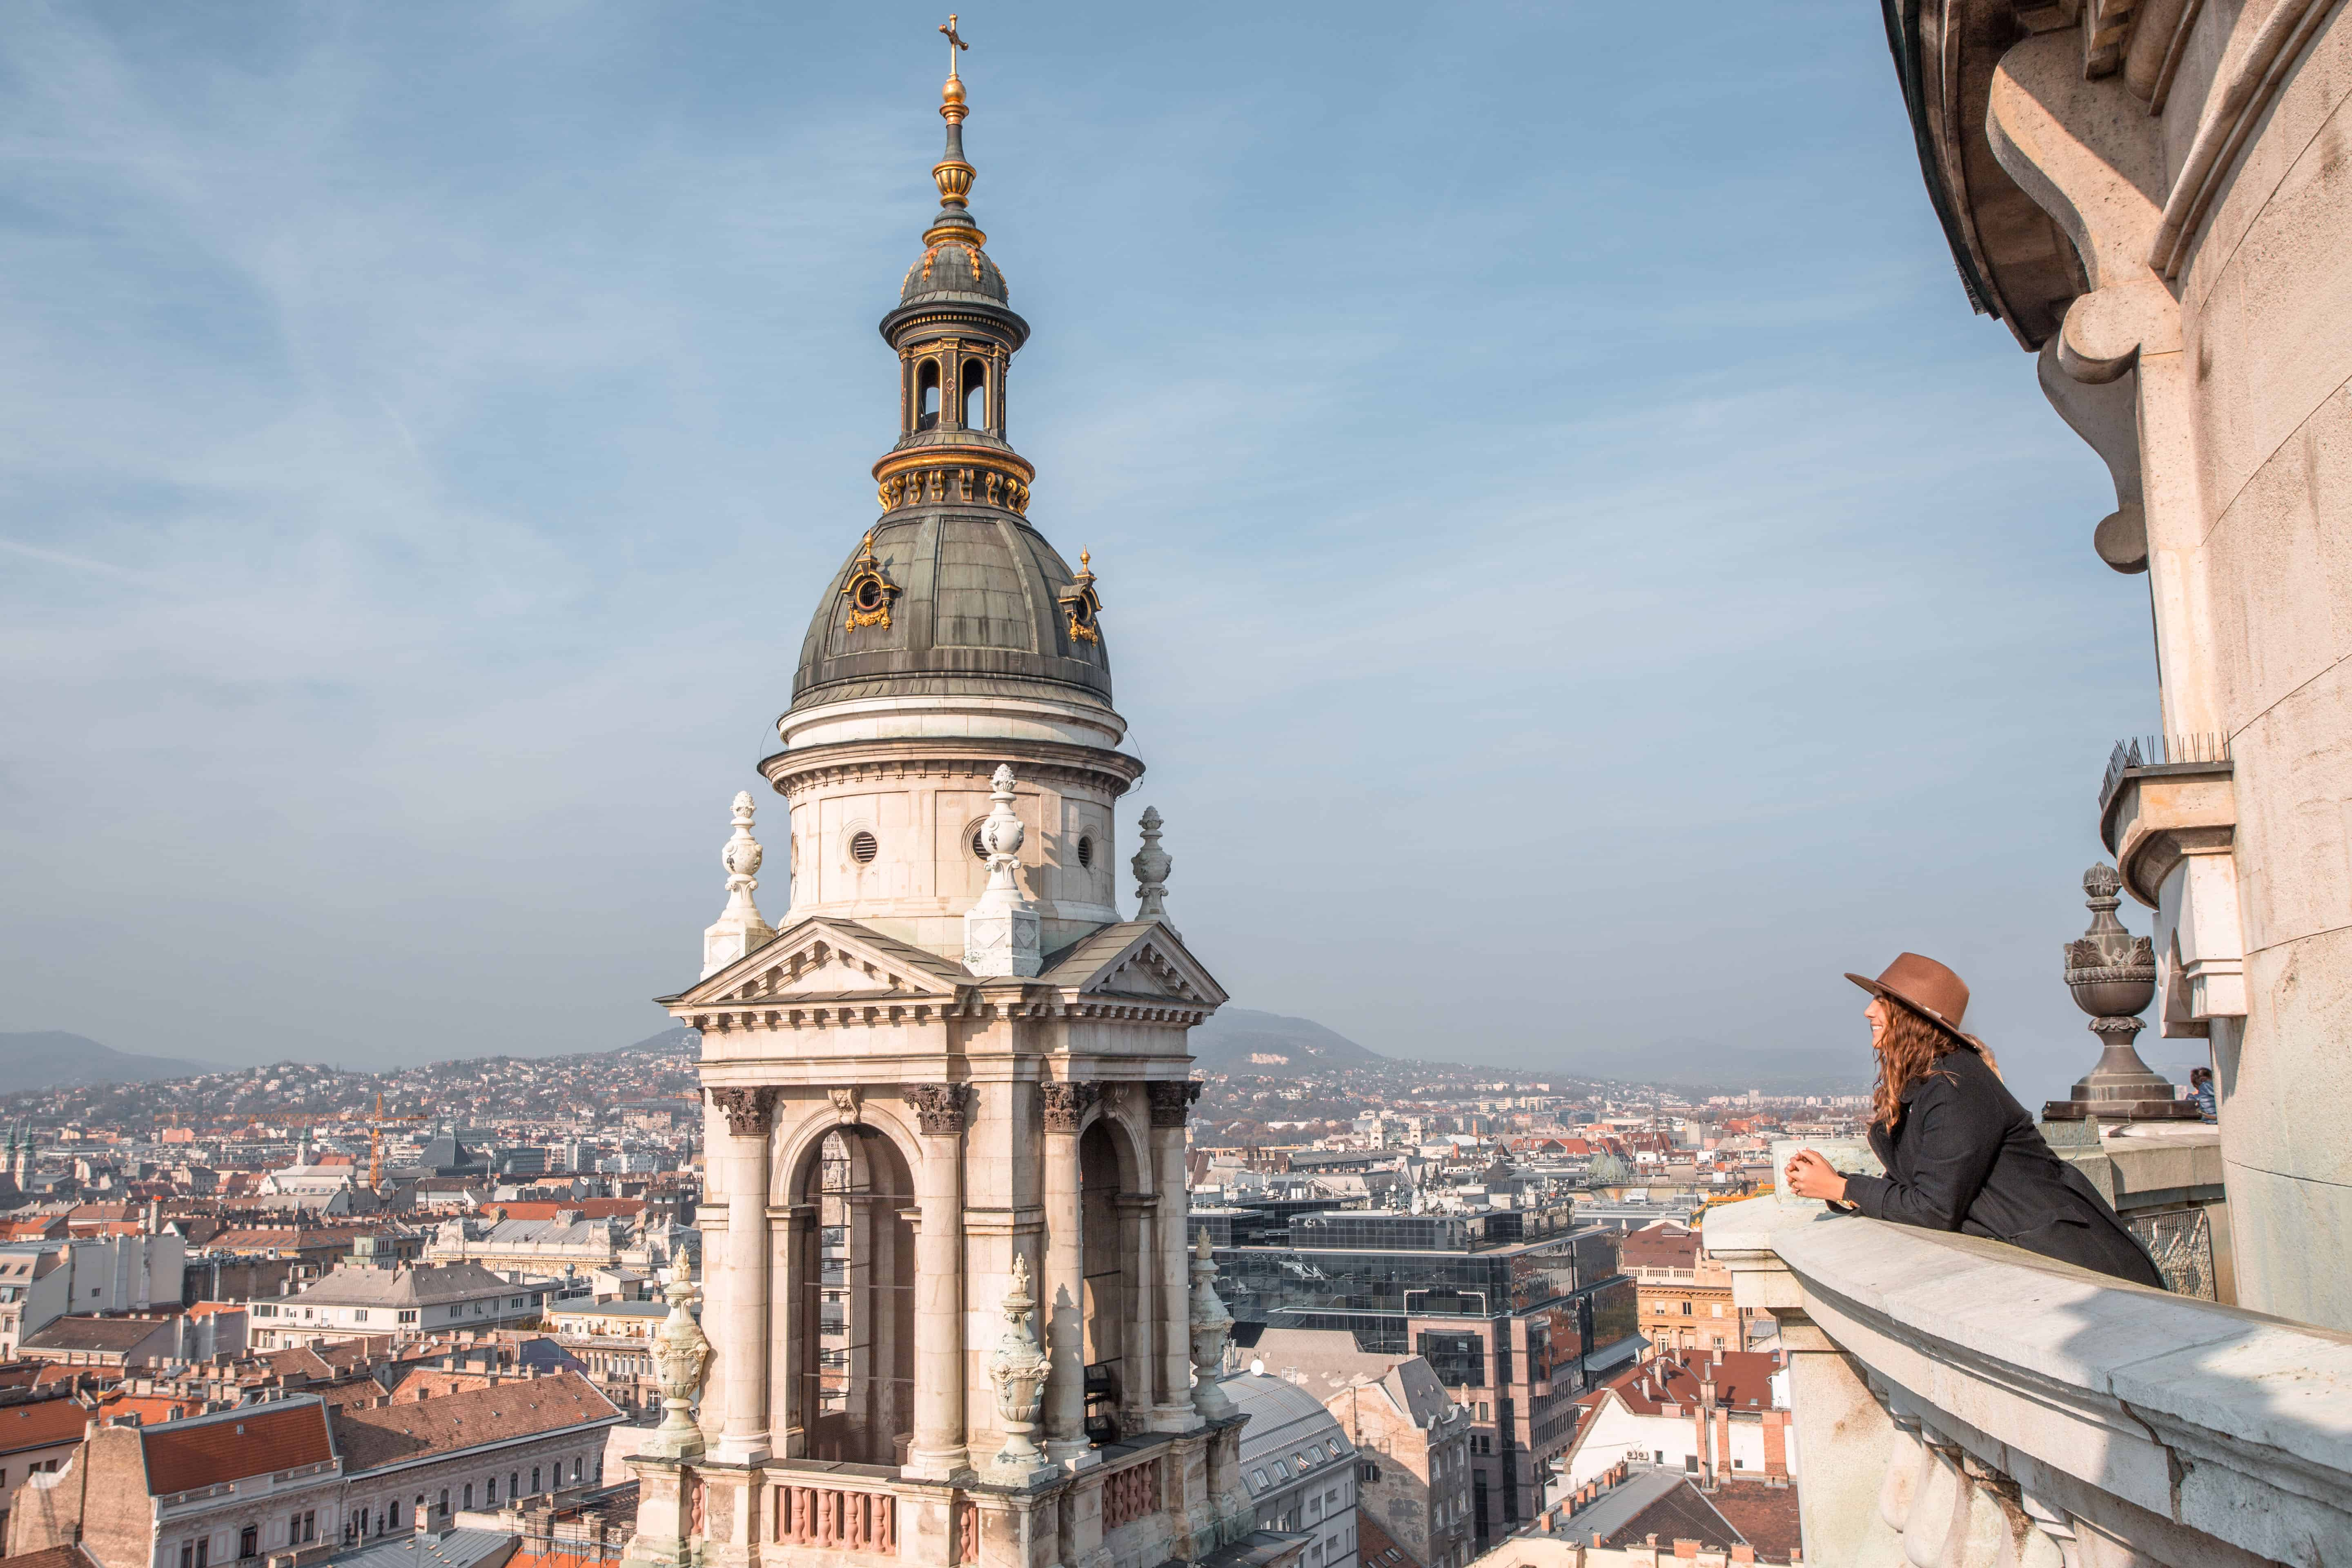 St. Stephen's Basilica Budapest view from the dome